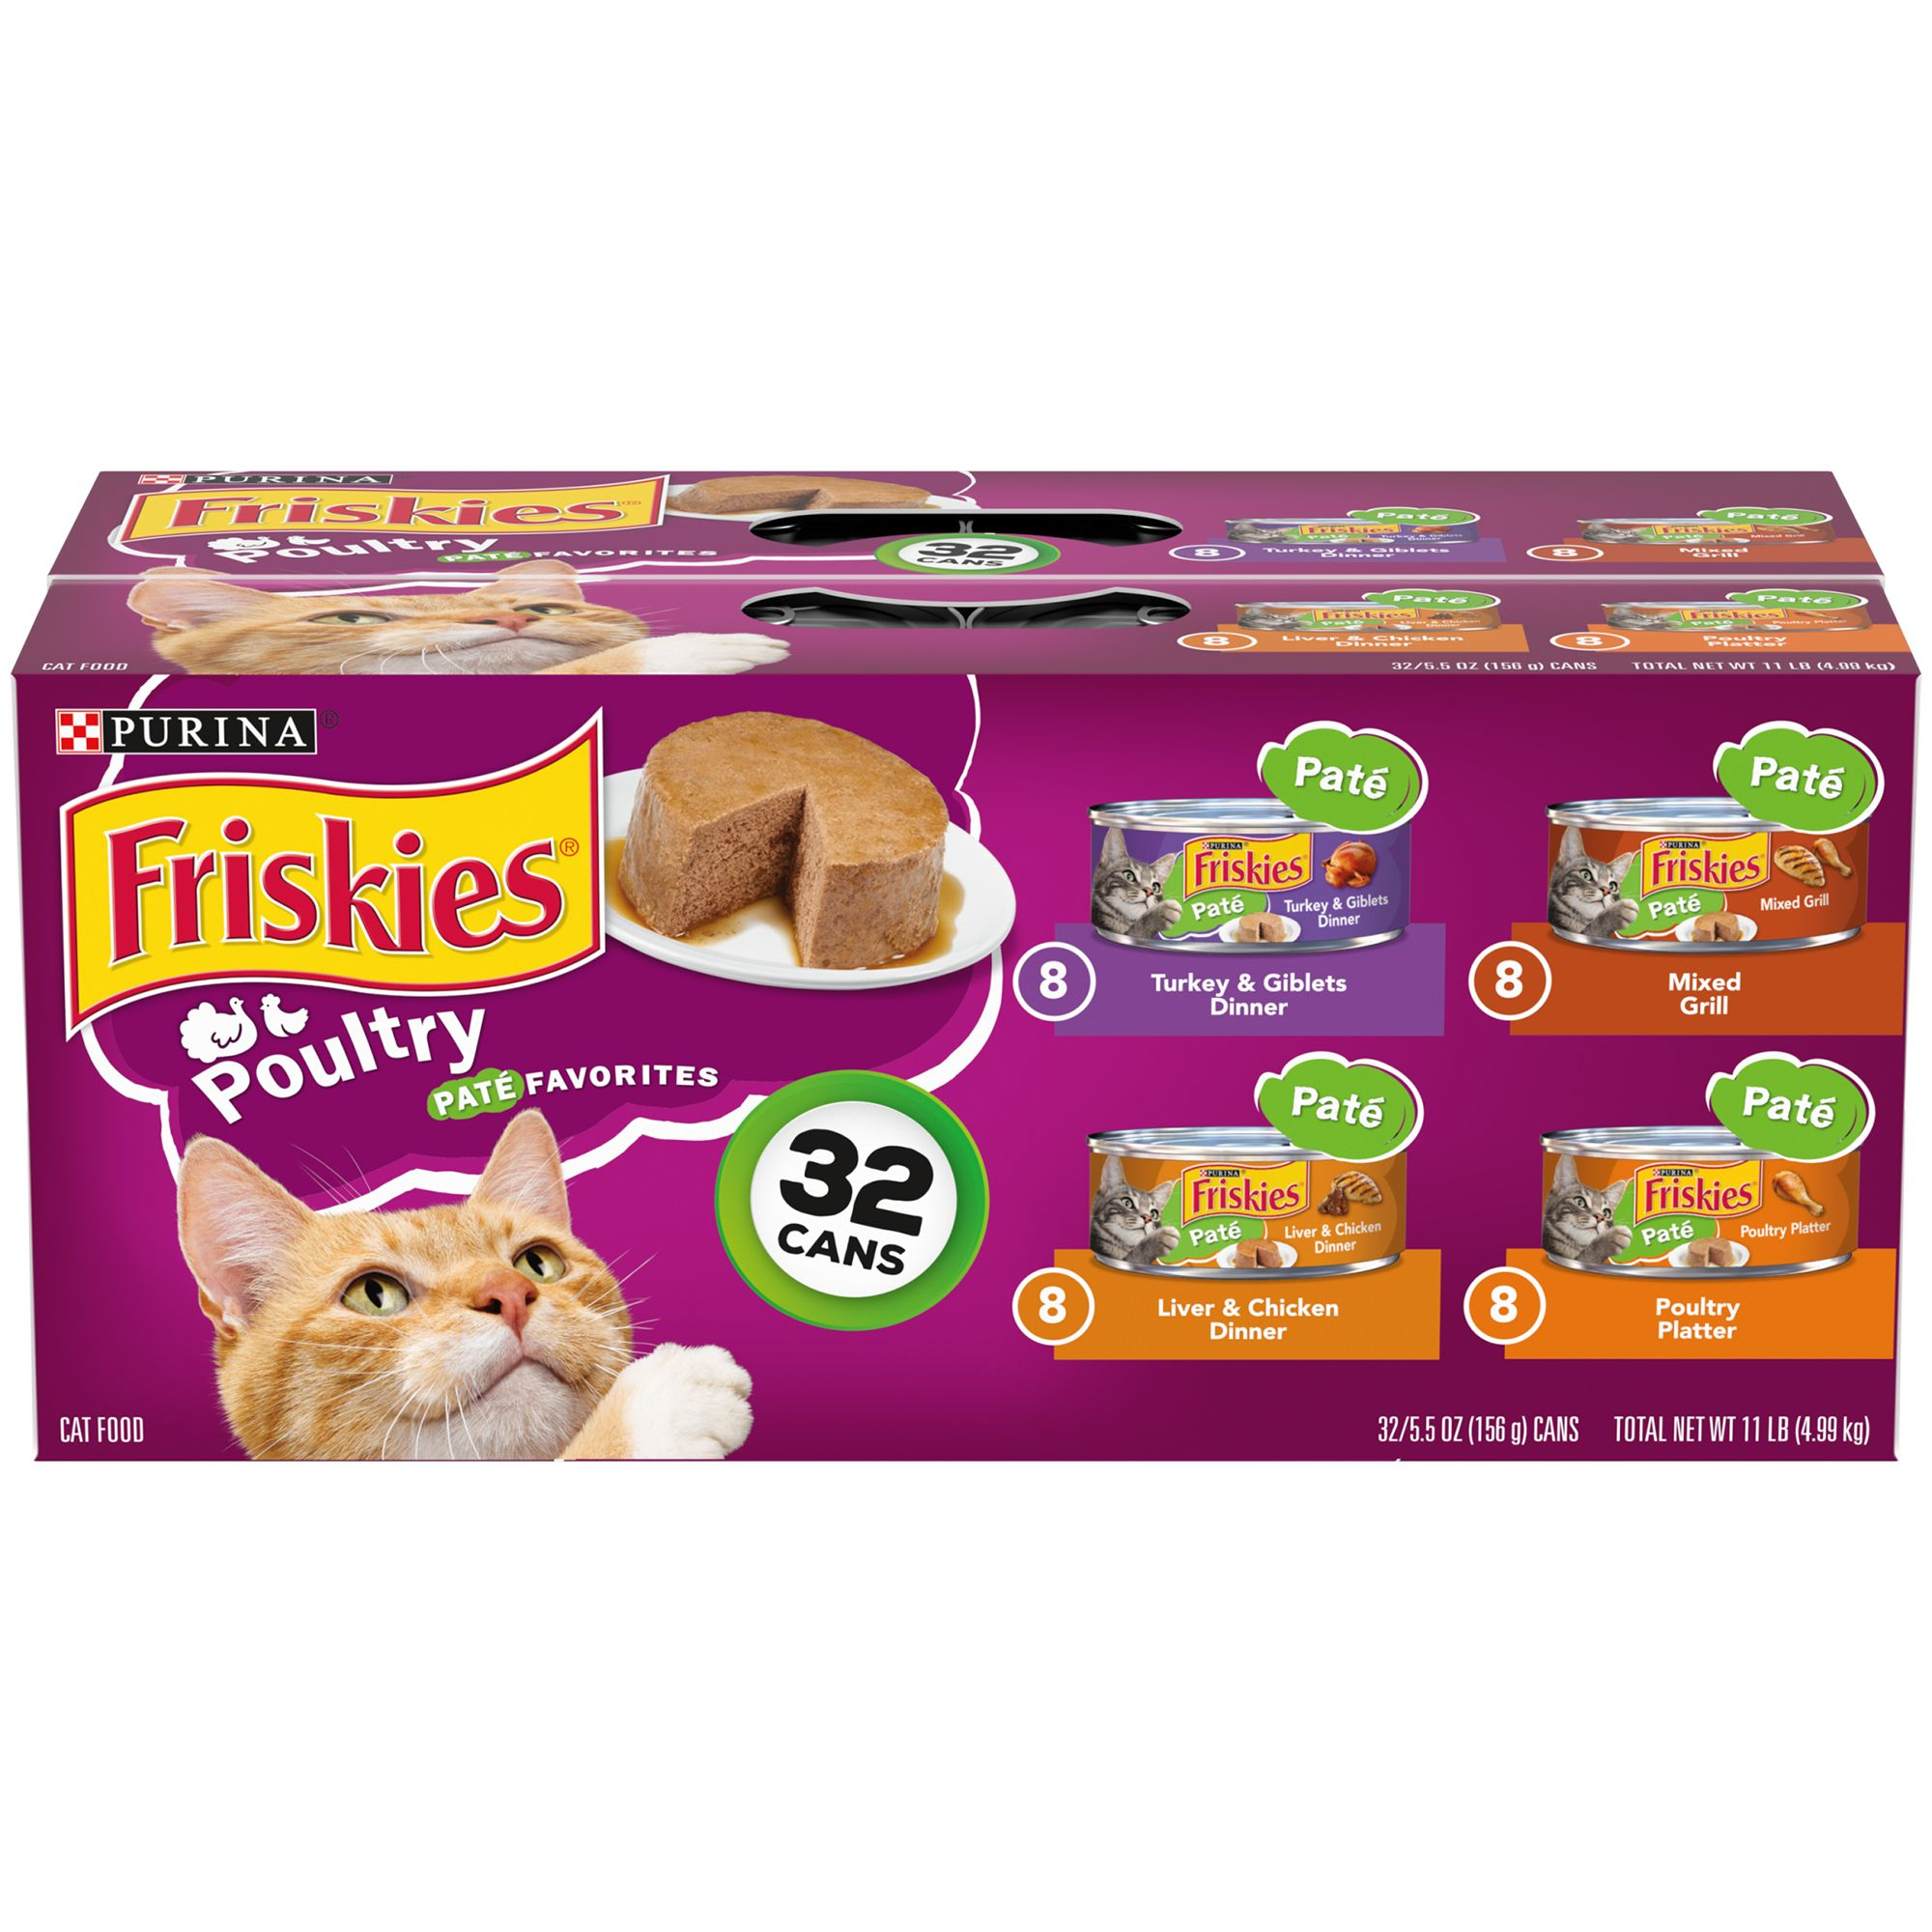 Purina Friskies Cat Food Poultry Favorites Classic Pate 32 Can Value Pack Size 5.5 Oz